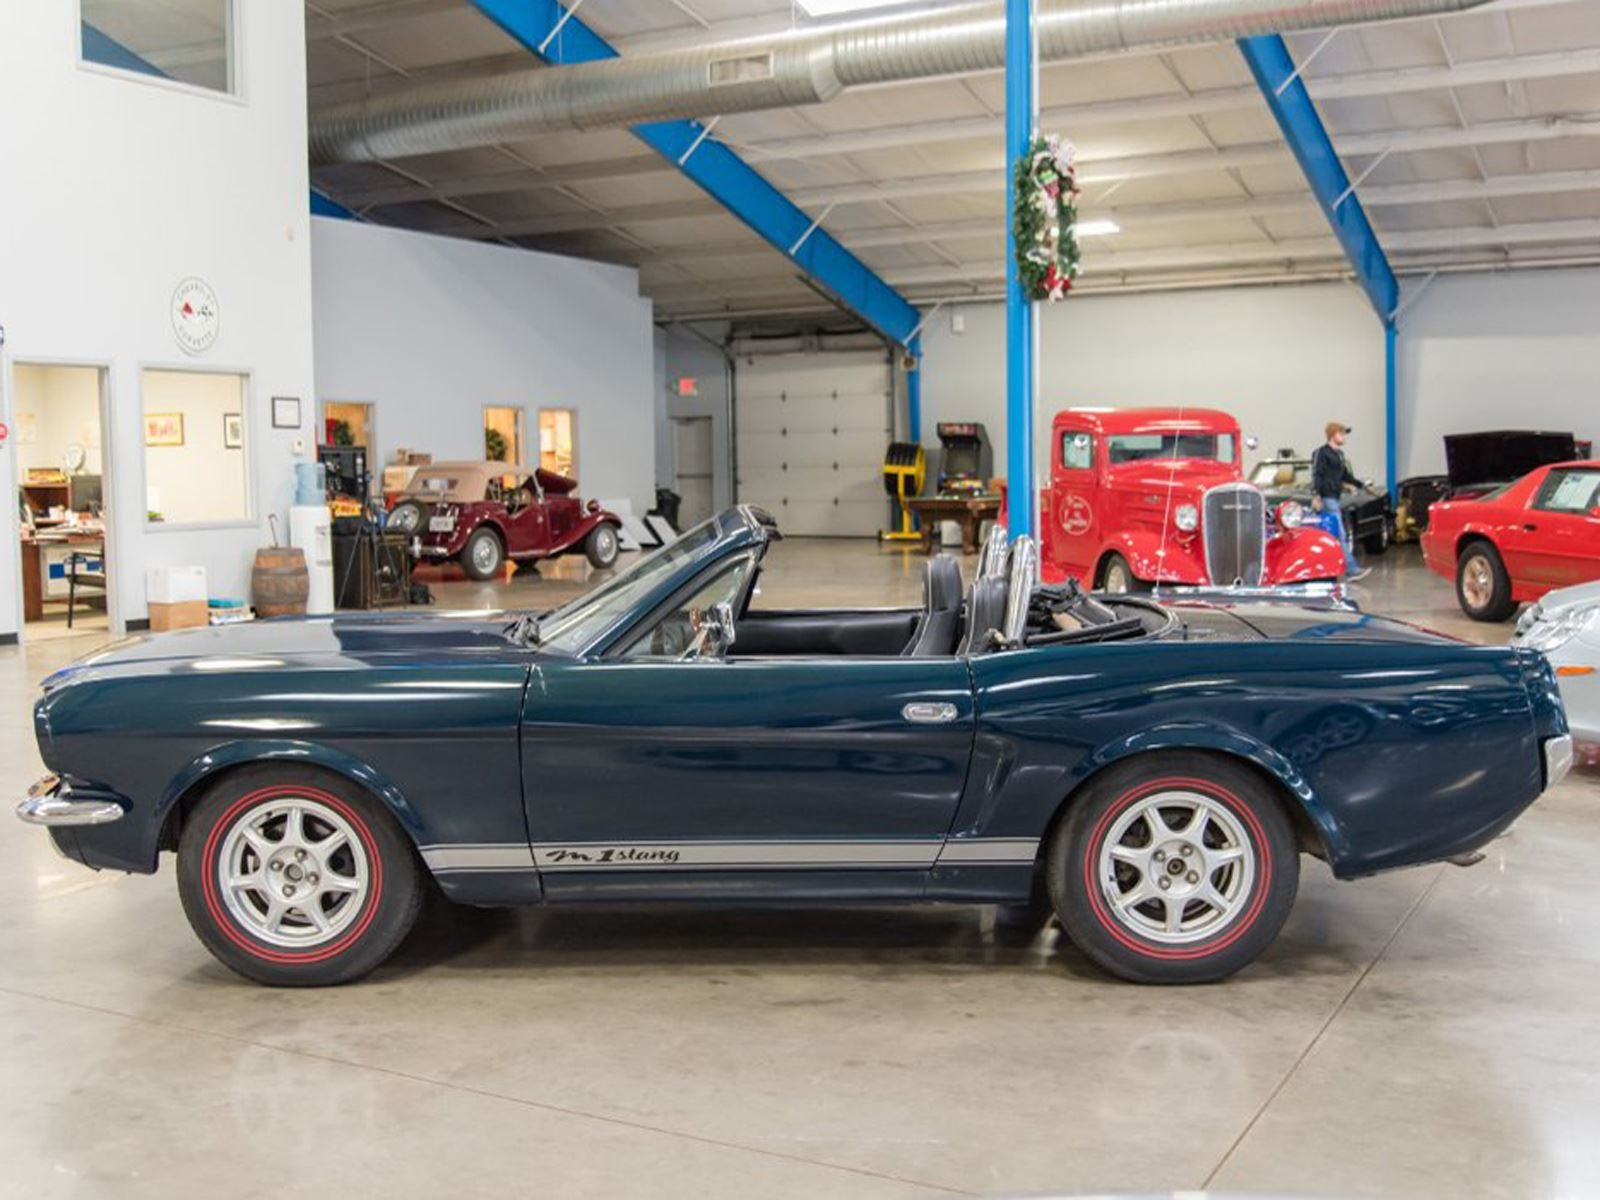 What Crackpot Converted This Mazda Miata Into A 1965 Mustang